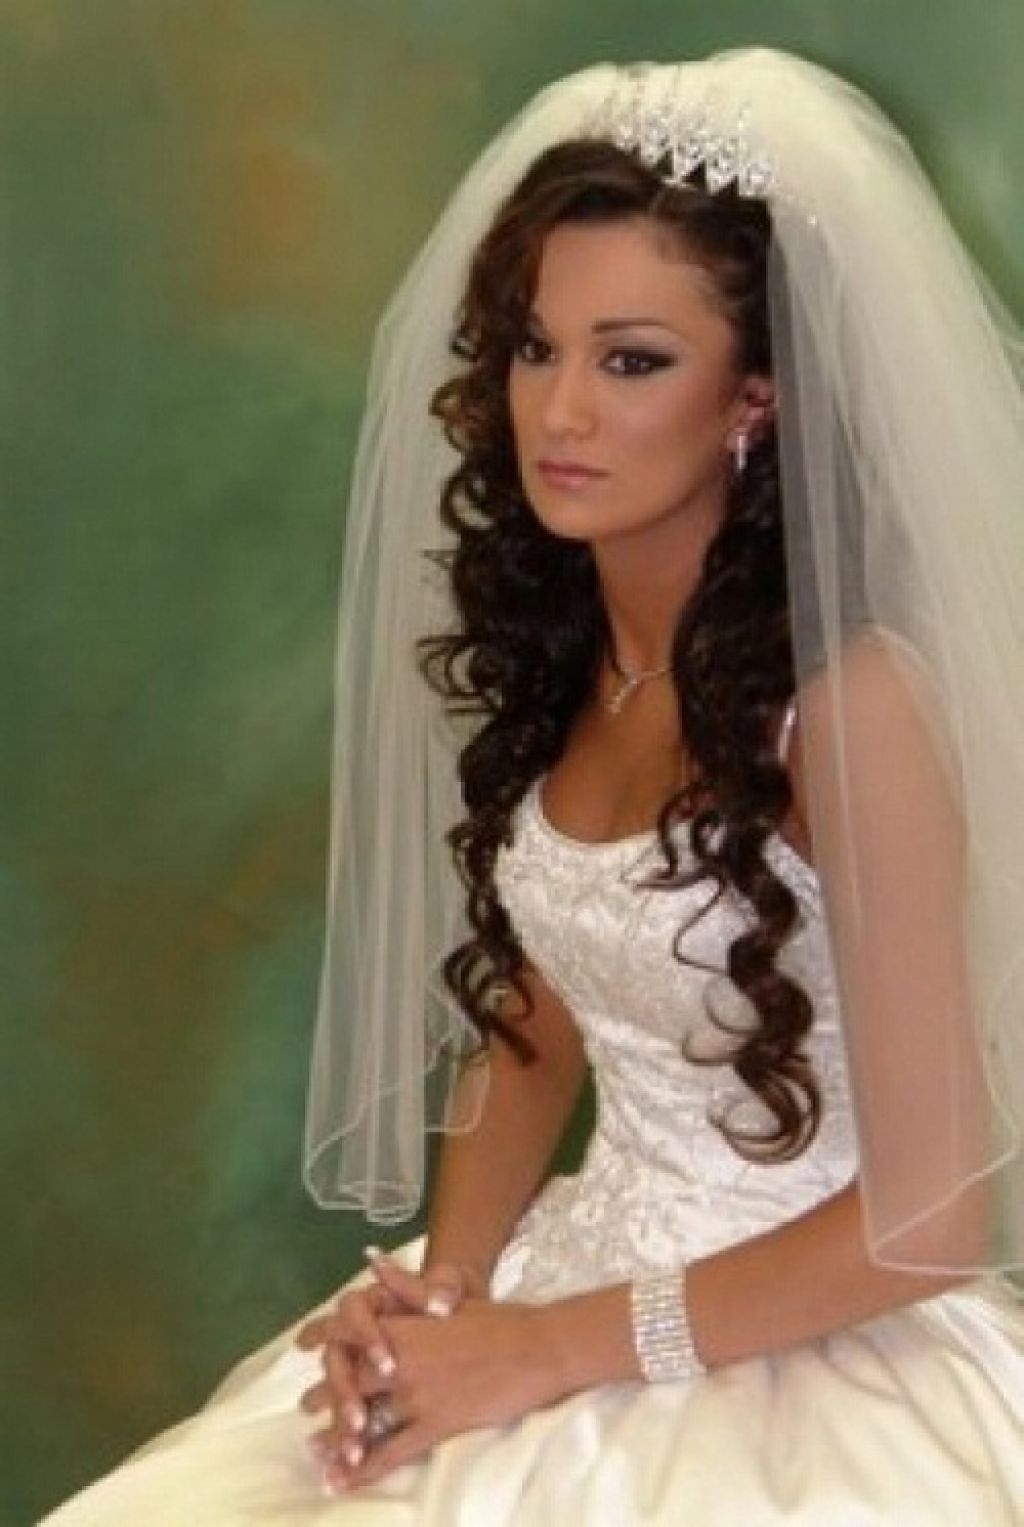 Current Wedding Hairstyles For Long Hair With Veils And Tiaras Throughout 20 Wedding Hairstyles With Tiara Ideas (View 1 of 15)